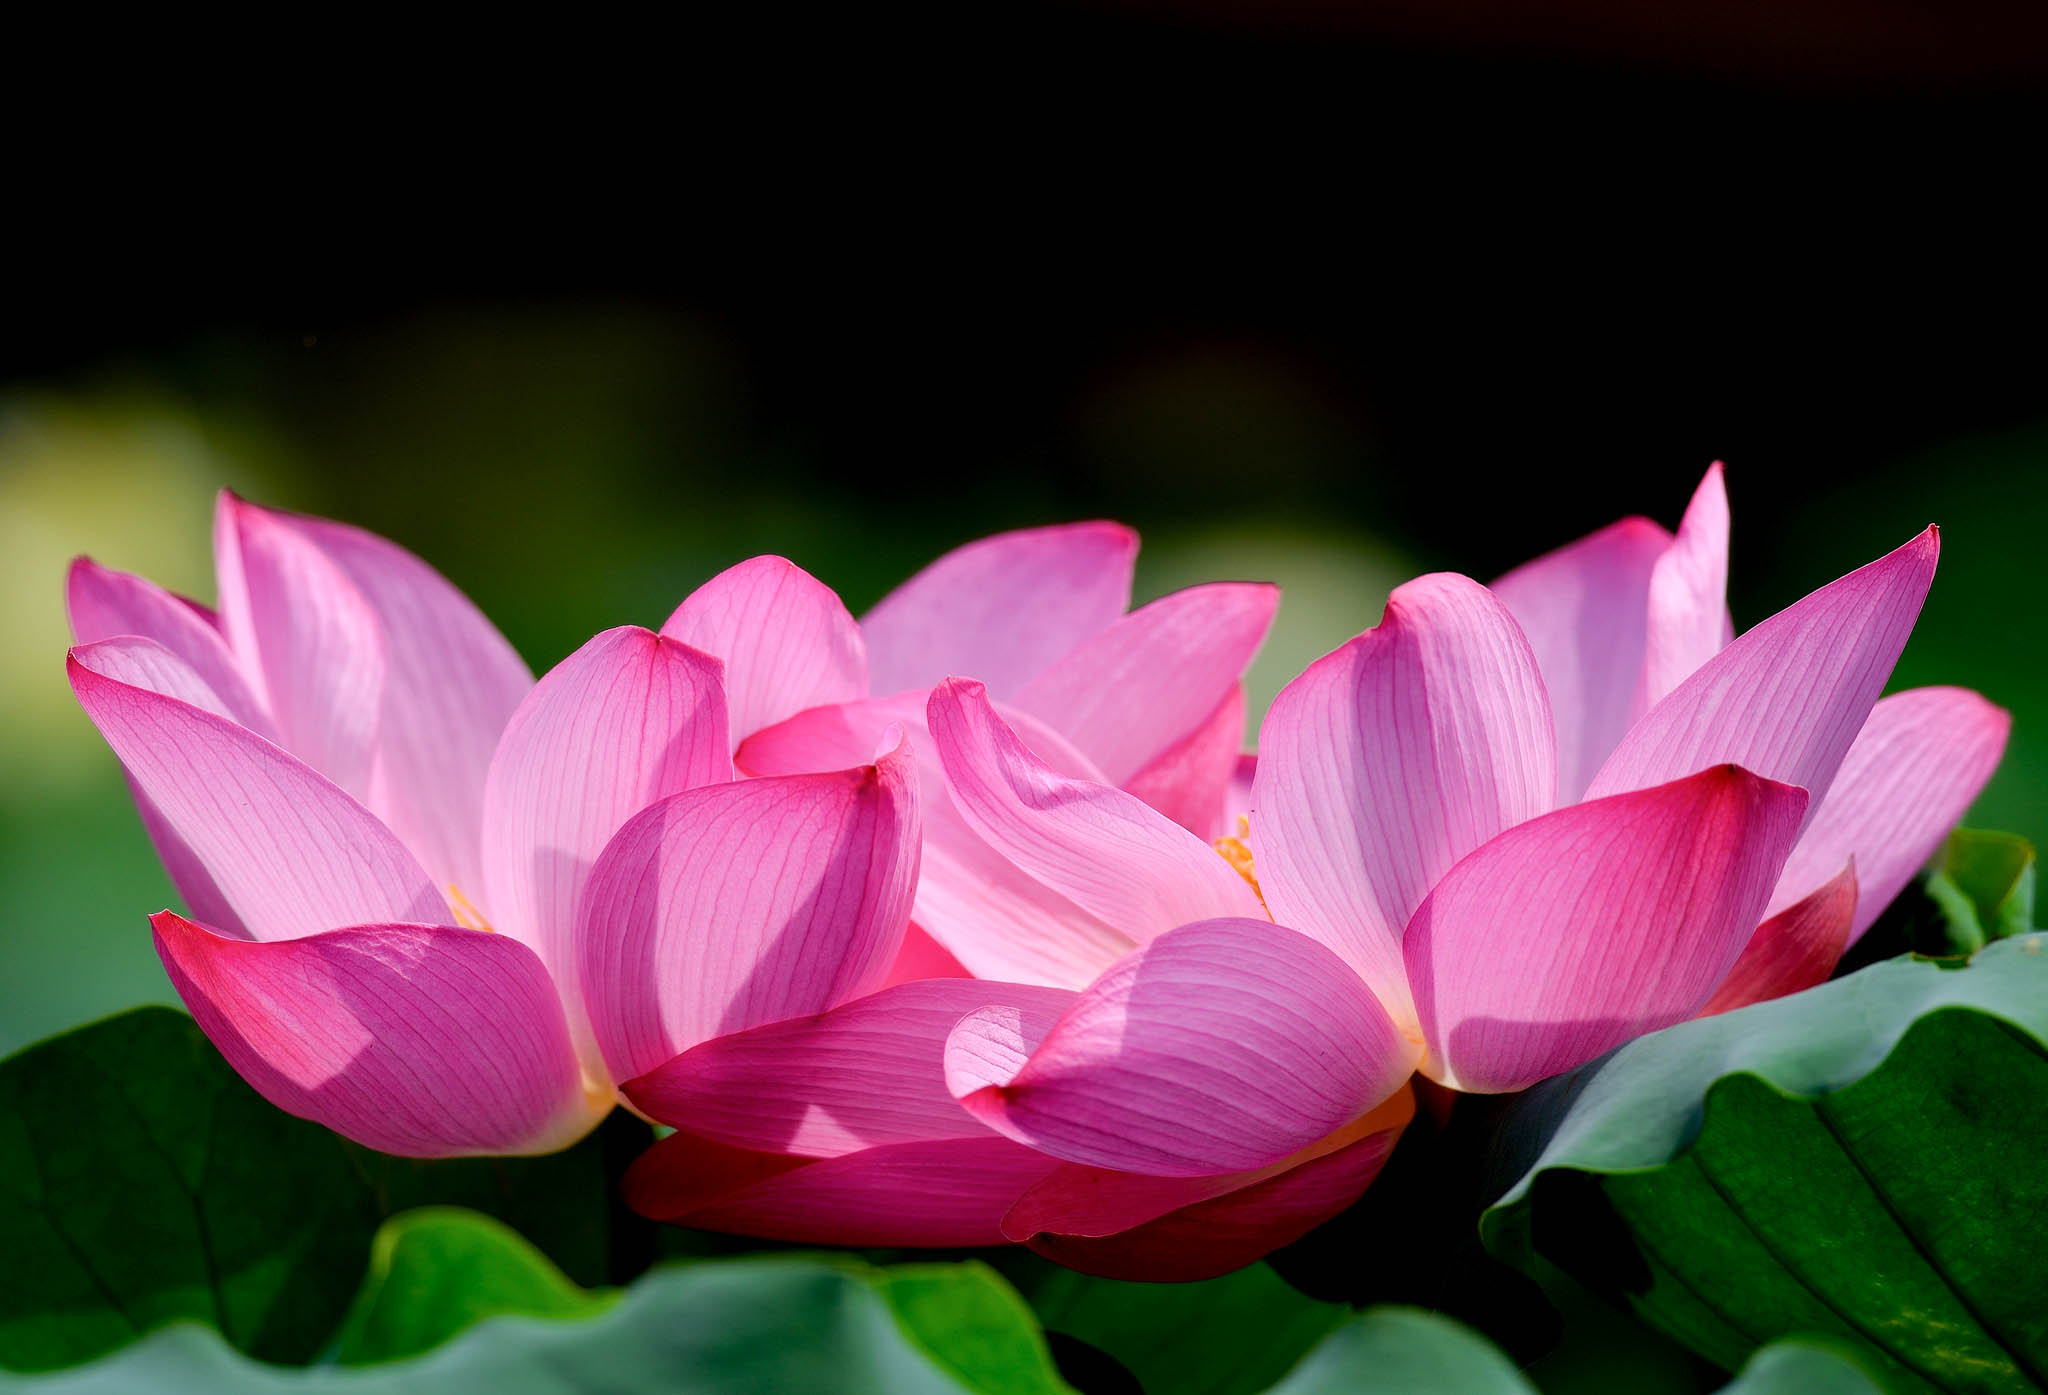 Lotus flower beautiful high quality hd wallpapers all hd wallpapers lotus 9 izmirmasajfo